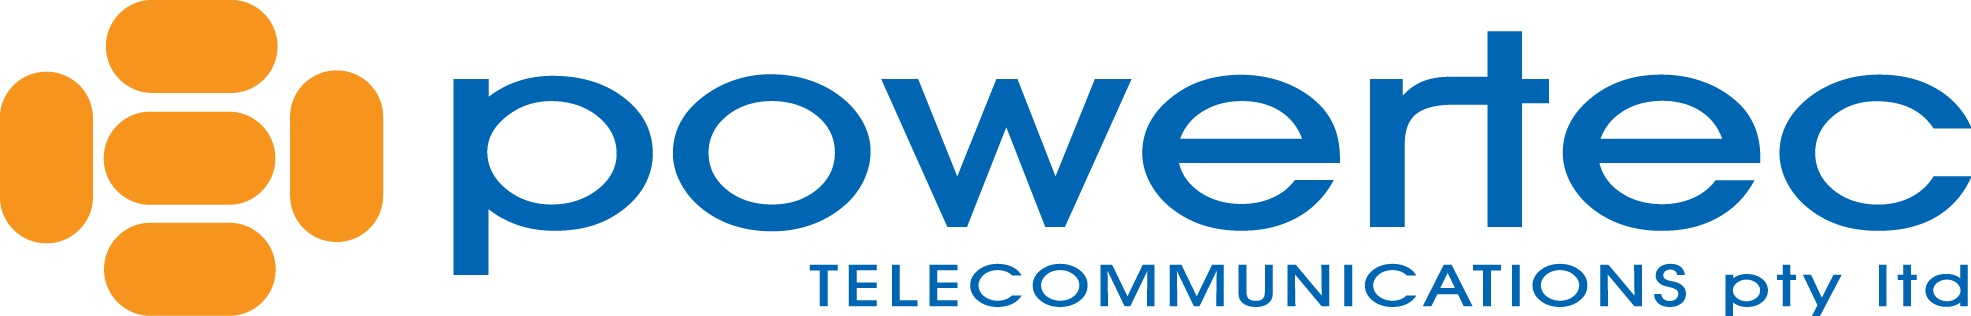 Powertec Telecommunications Help Center home page